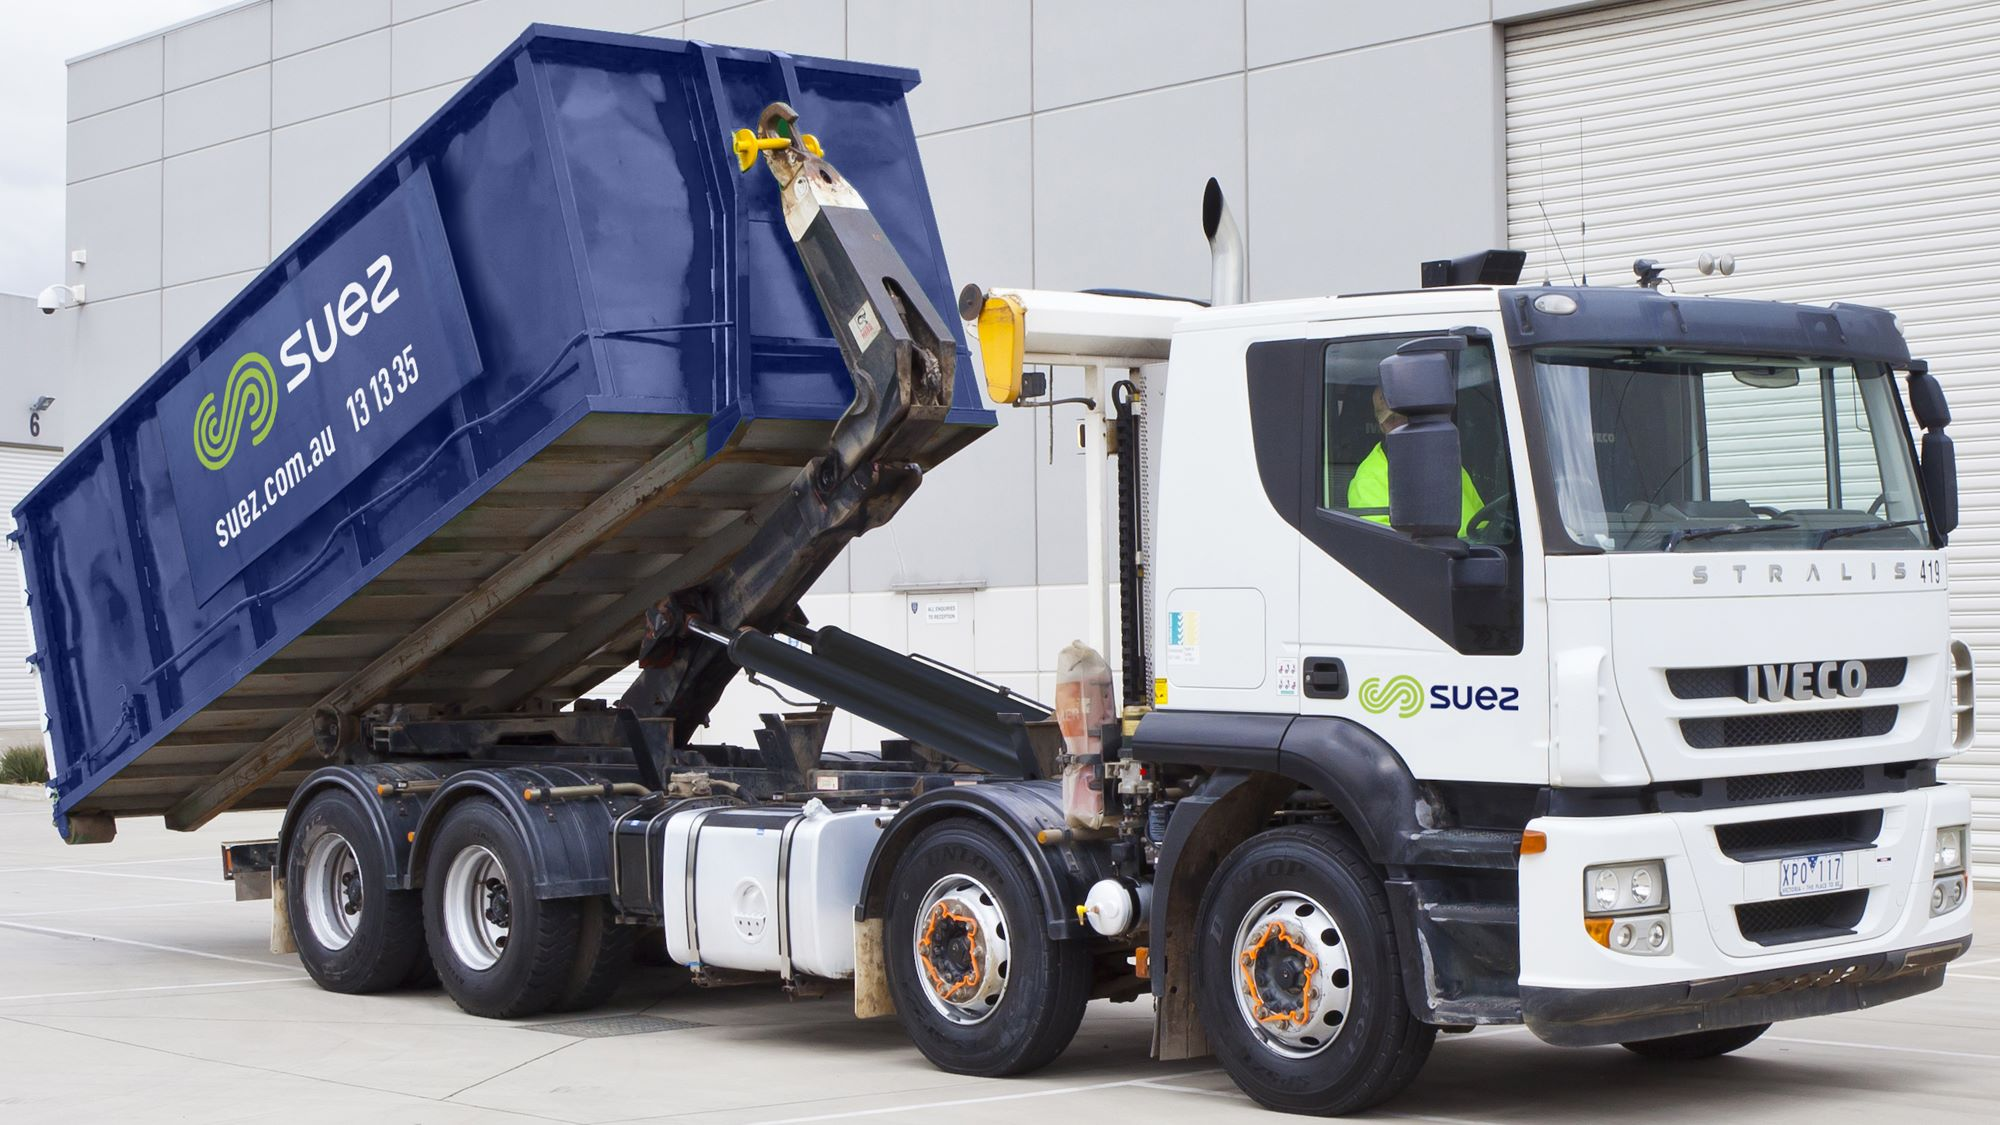 SUEZ skip and RORO bins header image. Image showing SUEZ liveried RORO truck demonstrating how to unload the bin safely.